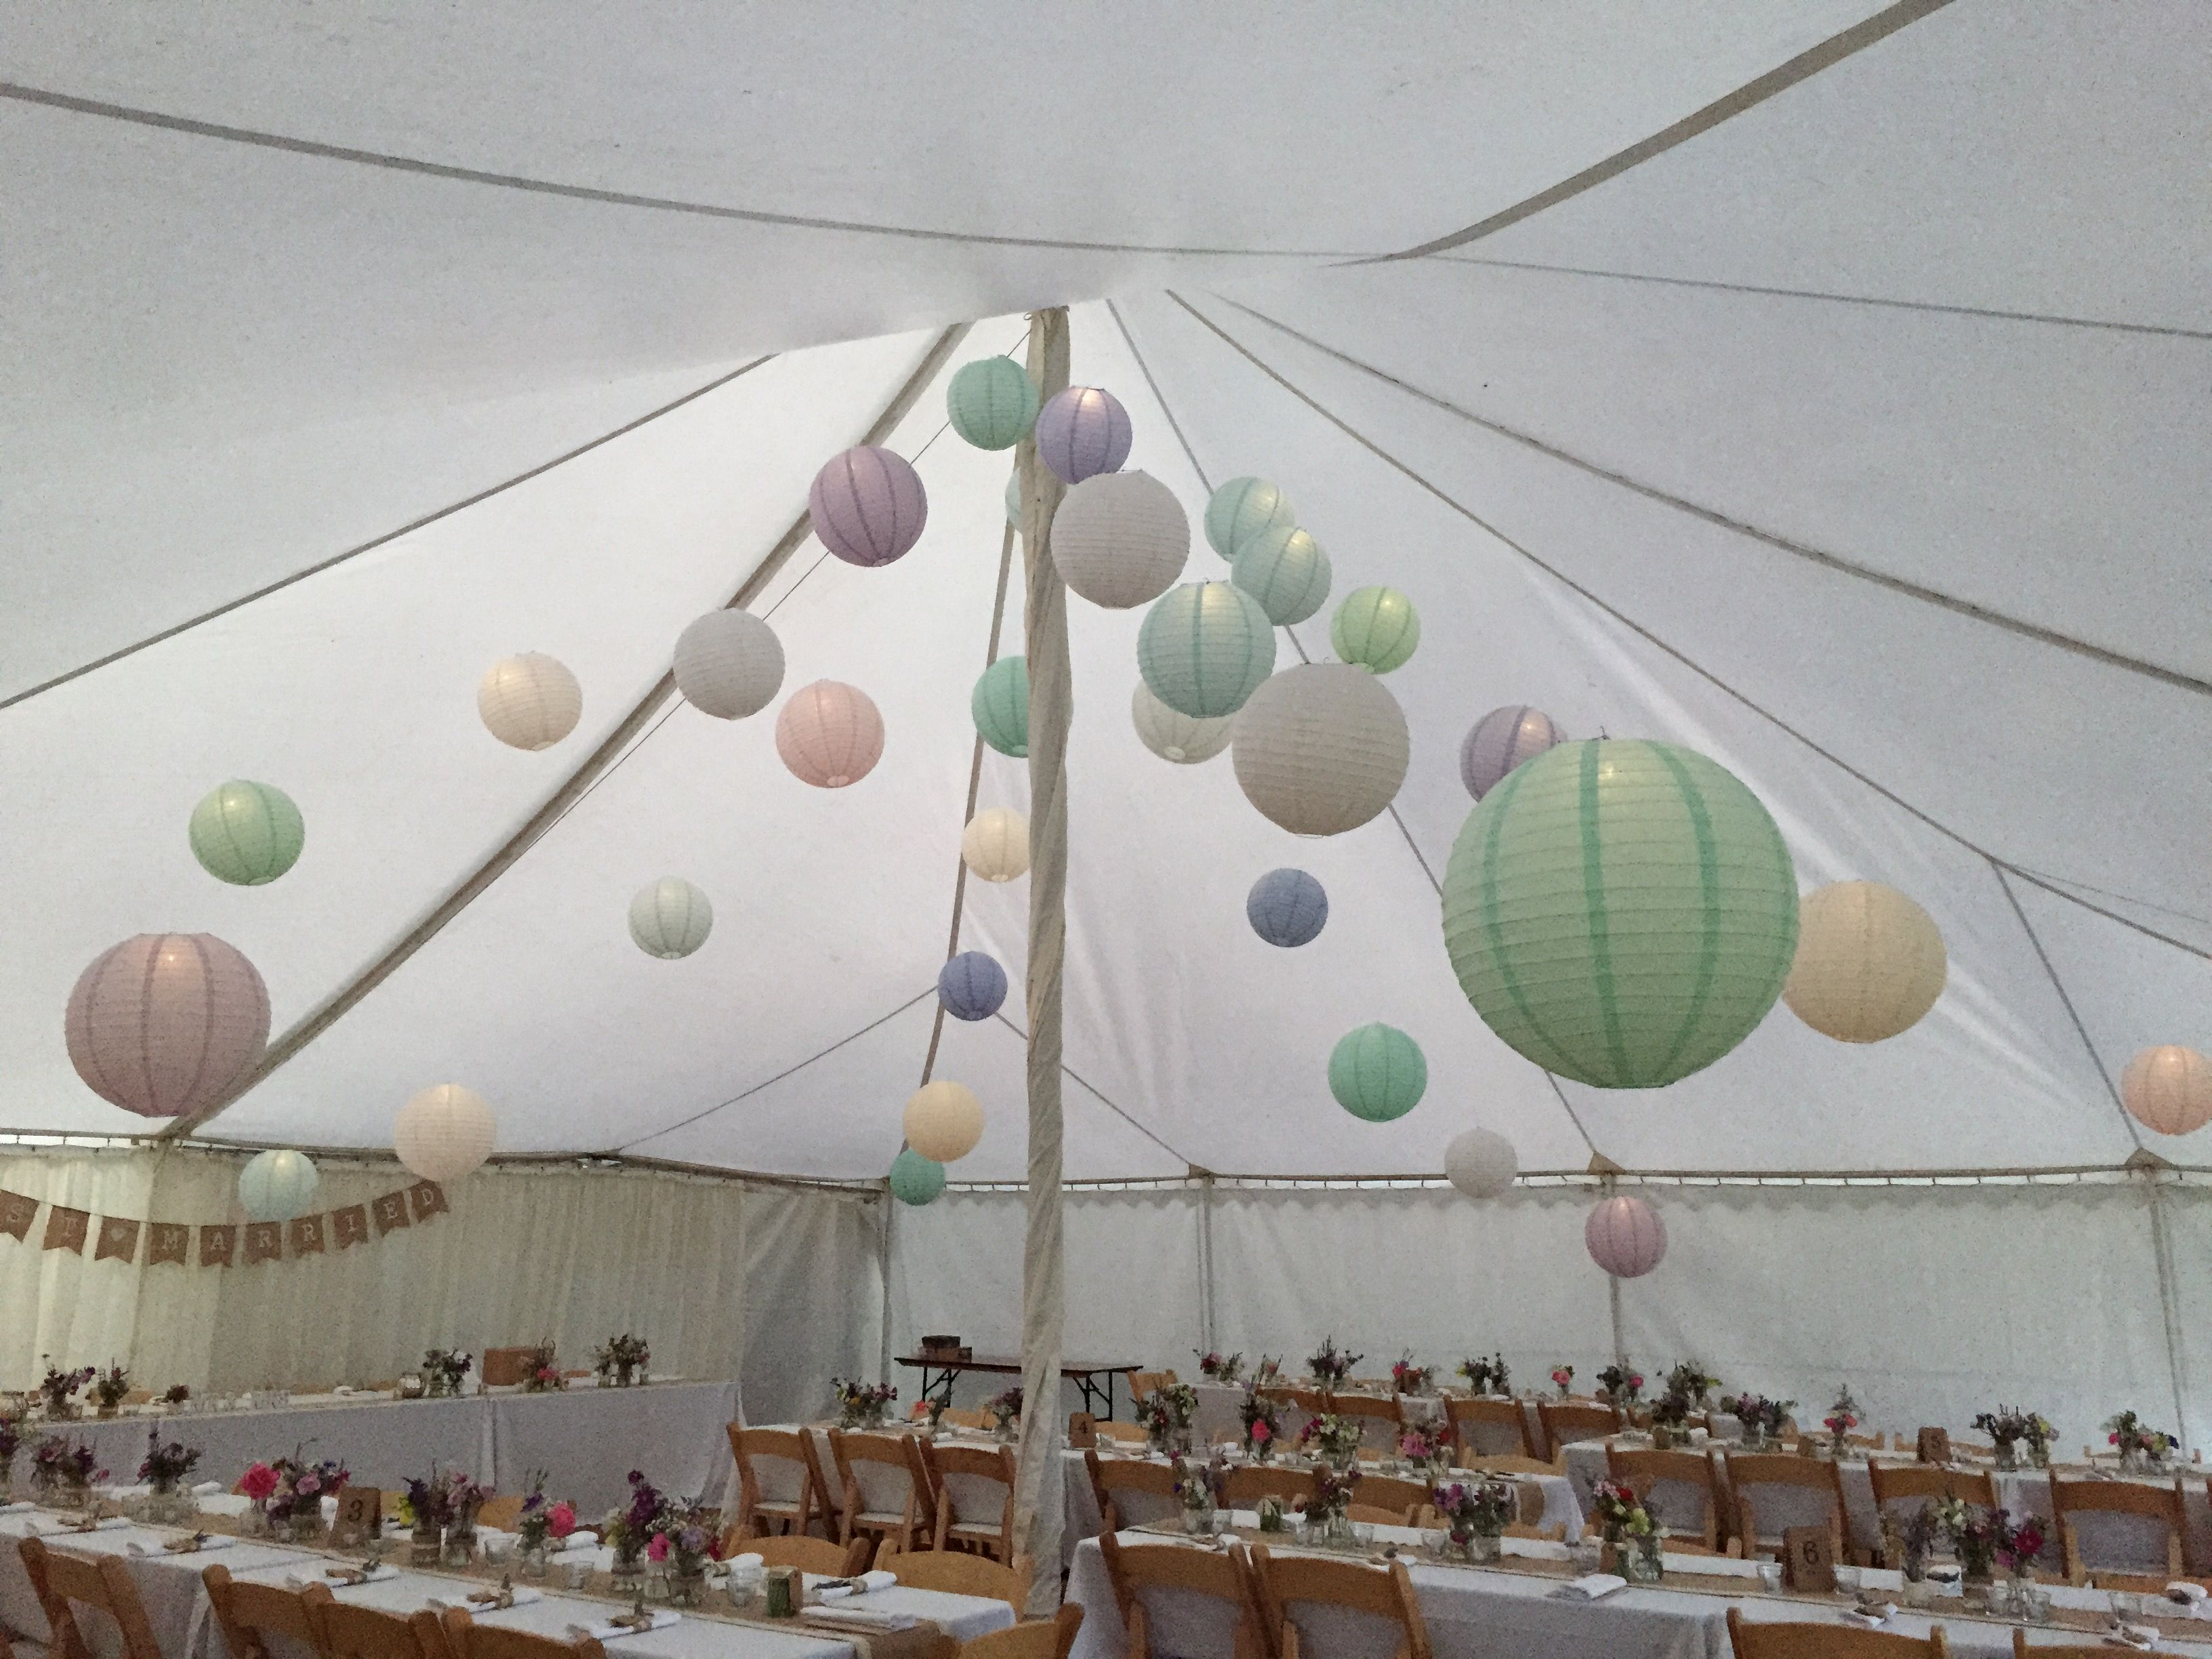 Choose pastels for a lighting extravaganza; paper lanterns with small bulbs, creating a look rather than a functional lighting use. Use uplights in the corners to create an evening 'glow' and fairy lights wrapped in organza to hide the unsightly pole and add more, delicate light. www.effervescenceevents.com